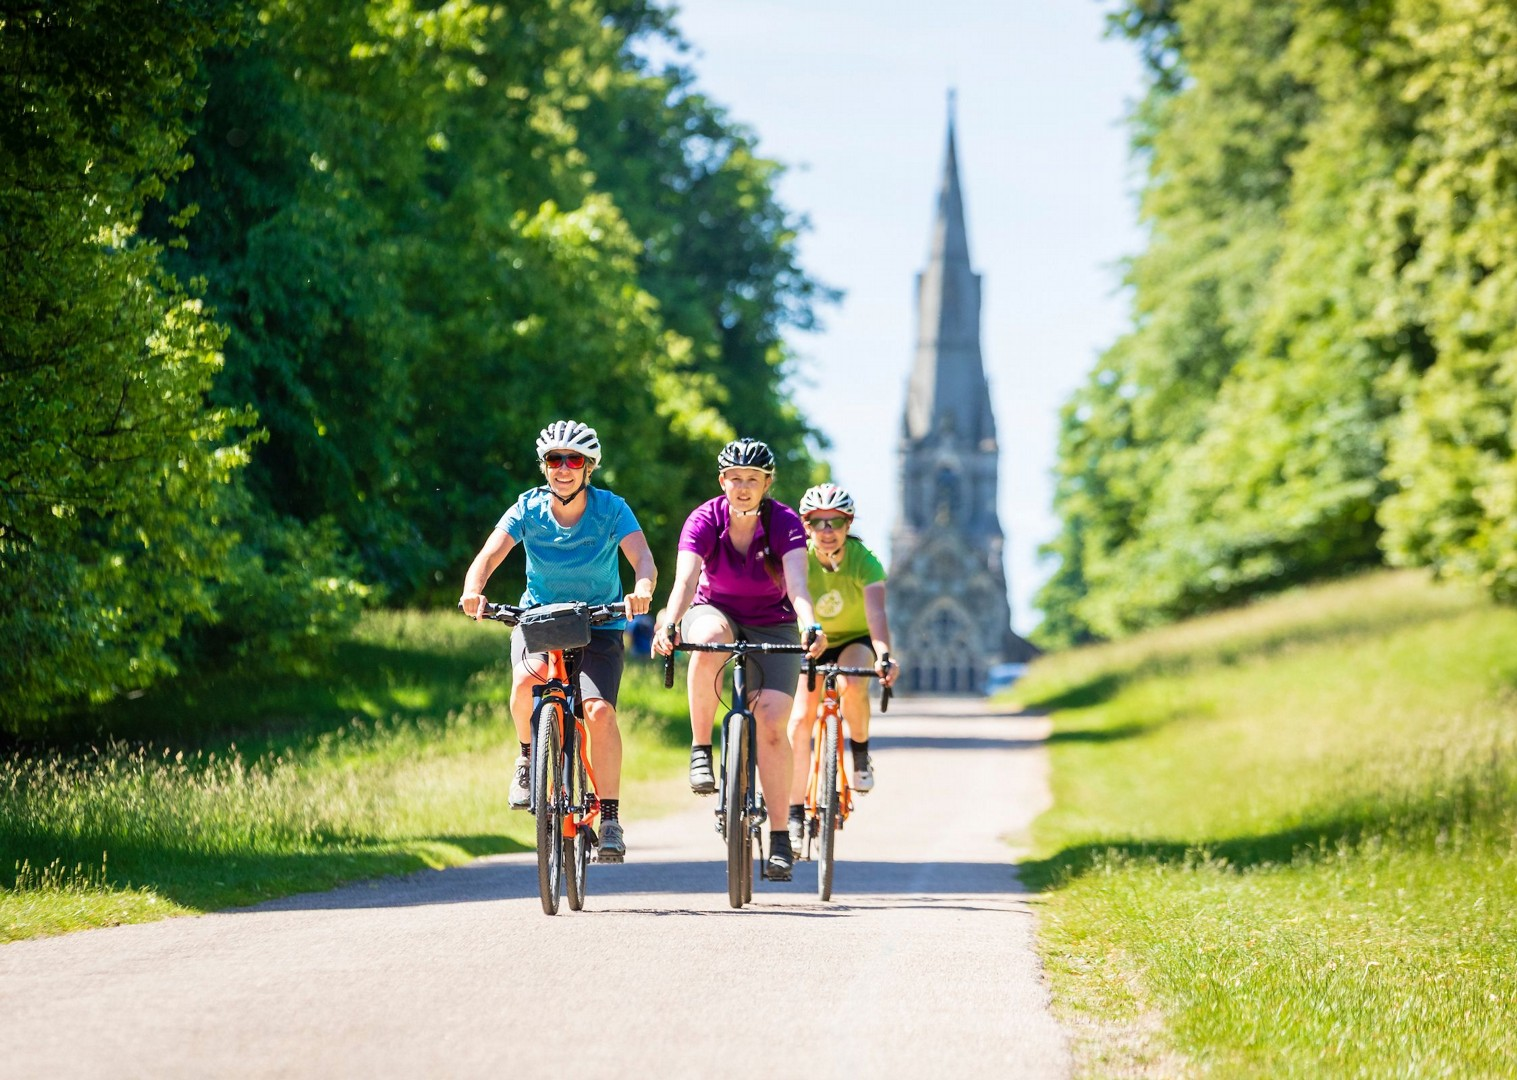 minster-york-wolds-landmark-uk-cycling-tour.jpg - UK - Way of the Roses - Supported Leisure Cycling Holiday - Leisure Cycling